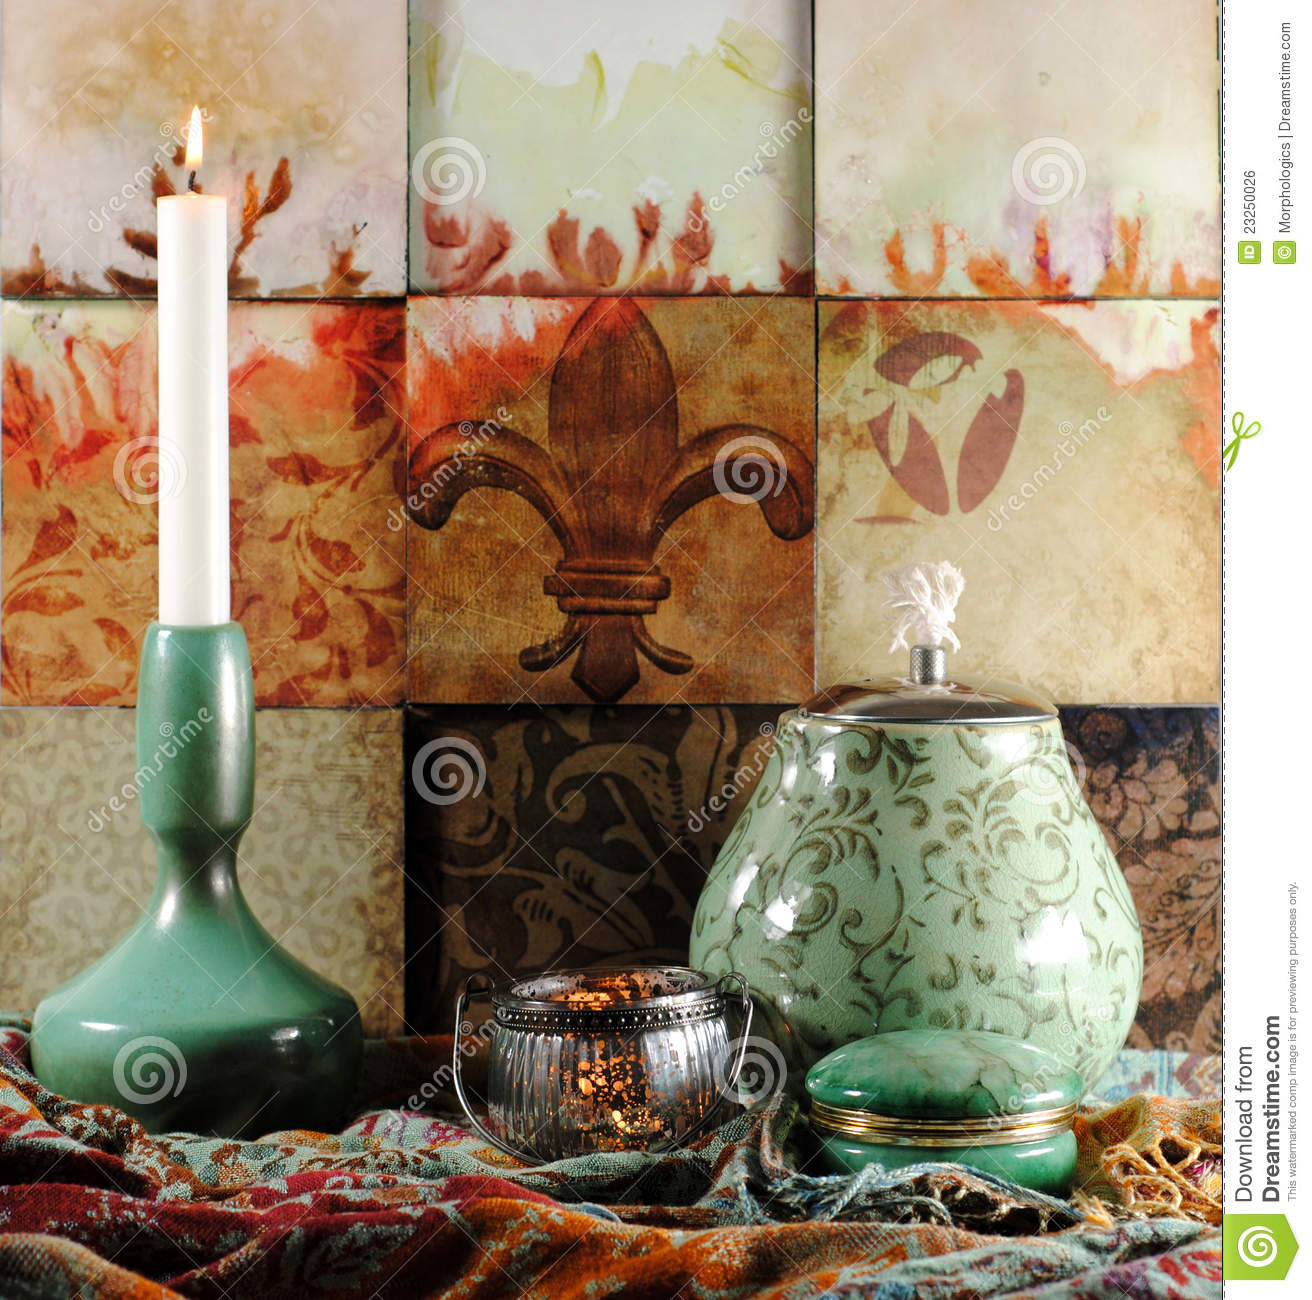 Oriental decoration objects royalty free stock image for Decoration orientale